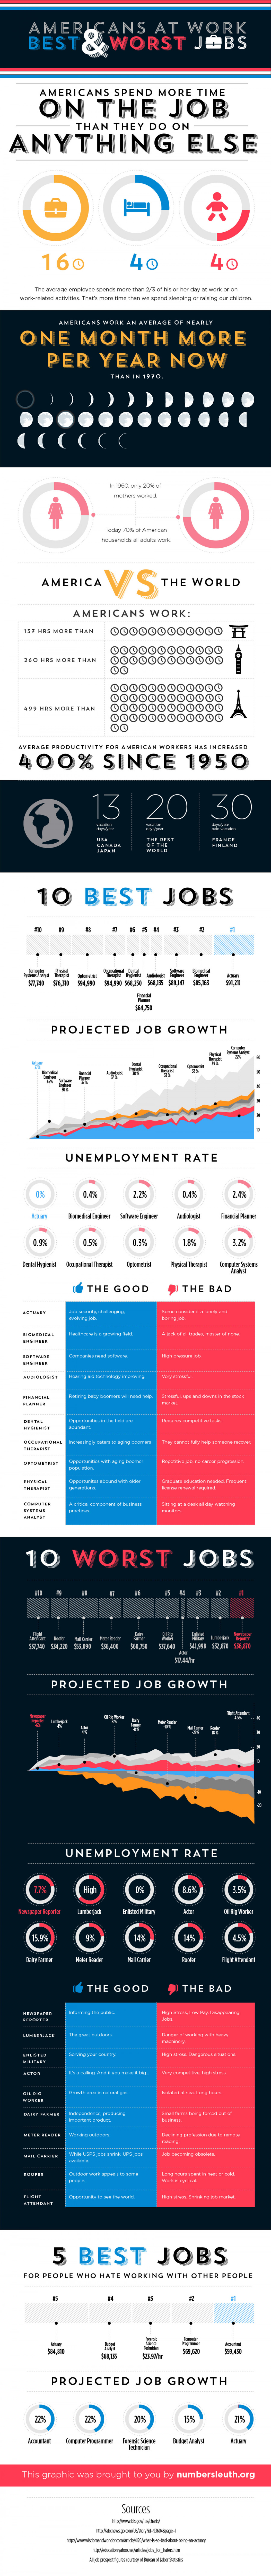 Americans at Work: The Best and Worst Jobs Infographic